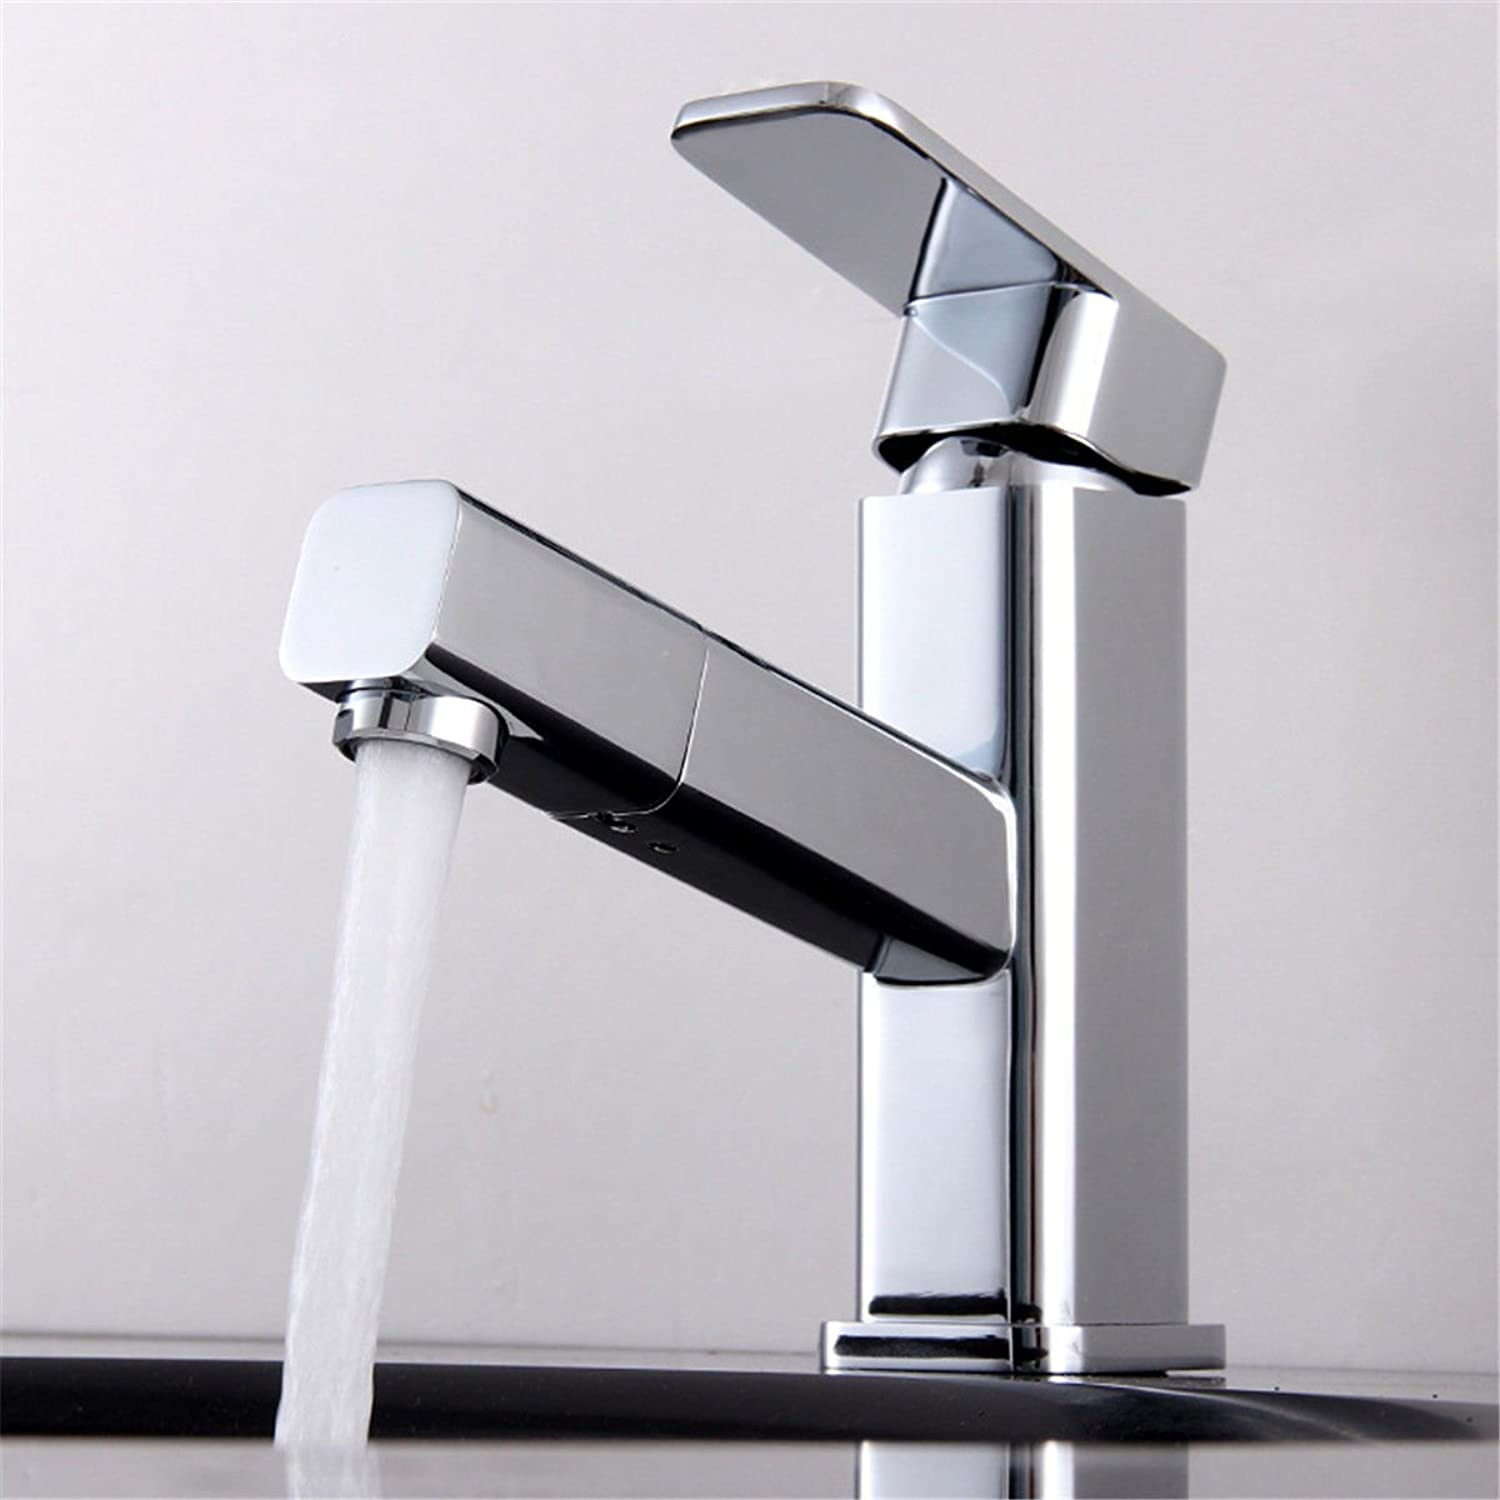 AQMMi Basin Taps Bathroom Sink Faucet Hot and Cold Water Pull-Out Bathroom Sink Faucet Basin Mixer Tap